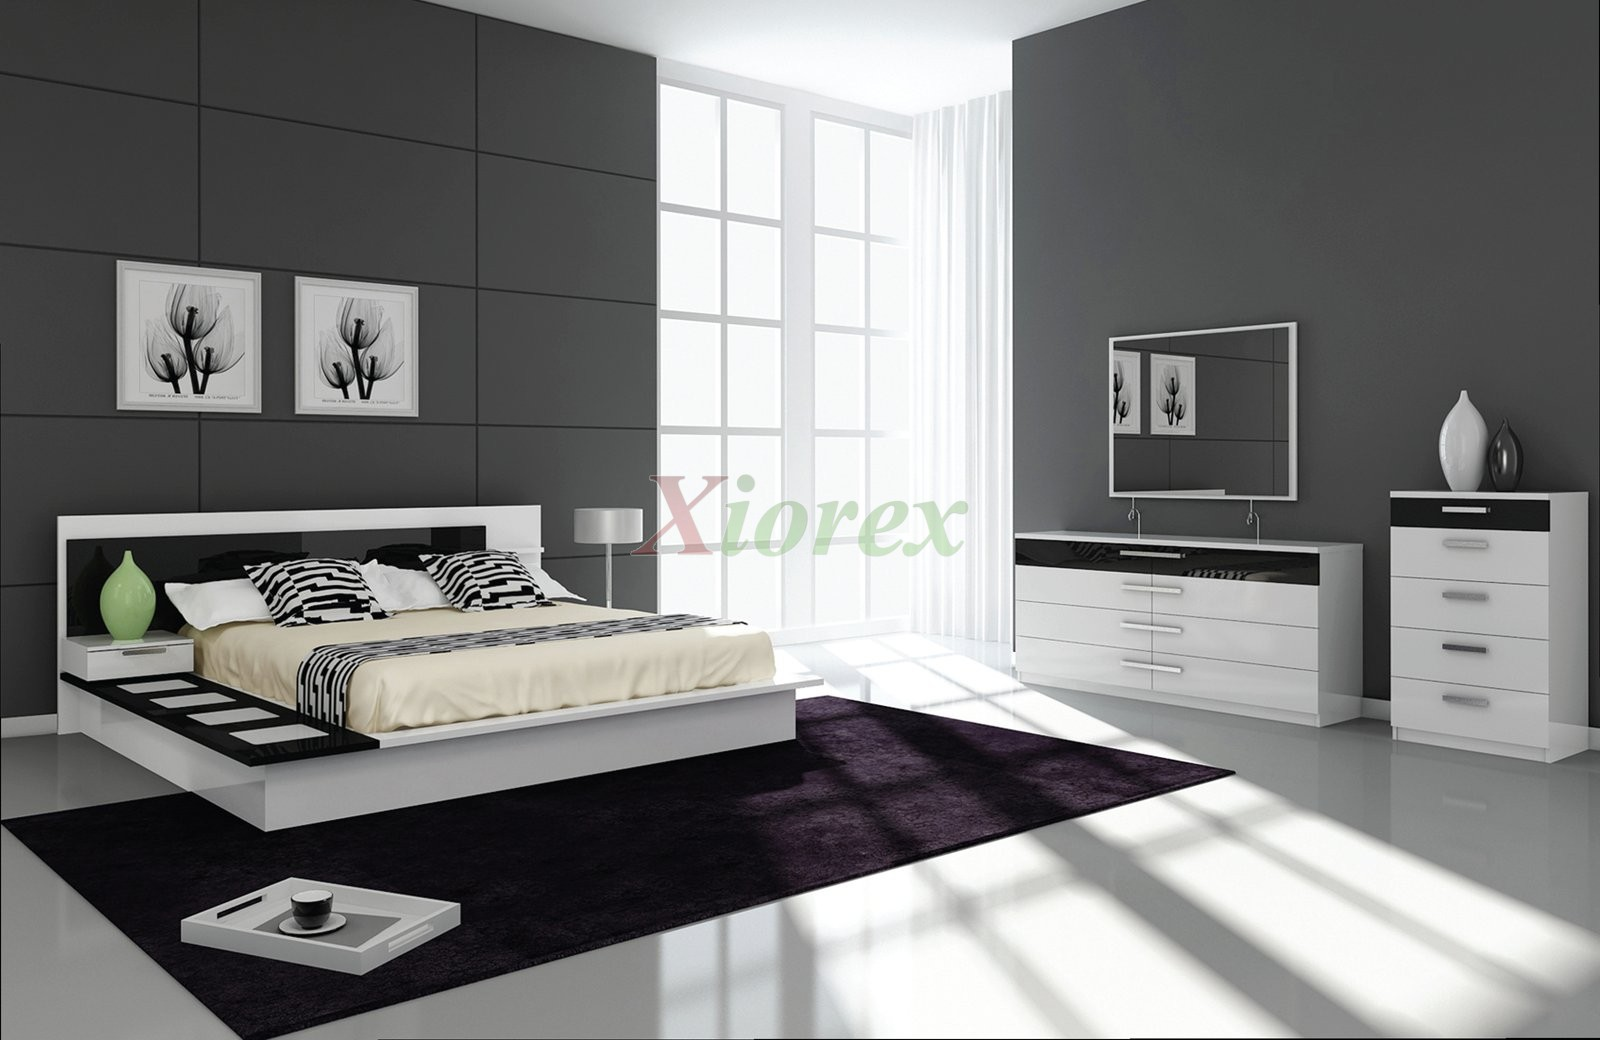 draco black and white contemporary bedroom furniture sets xiorex. Black Bedroom Furniture Sets. Home Design Ideas